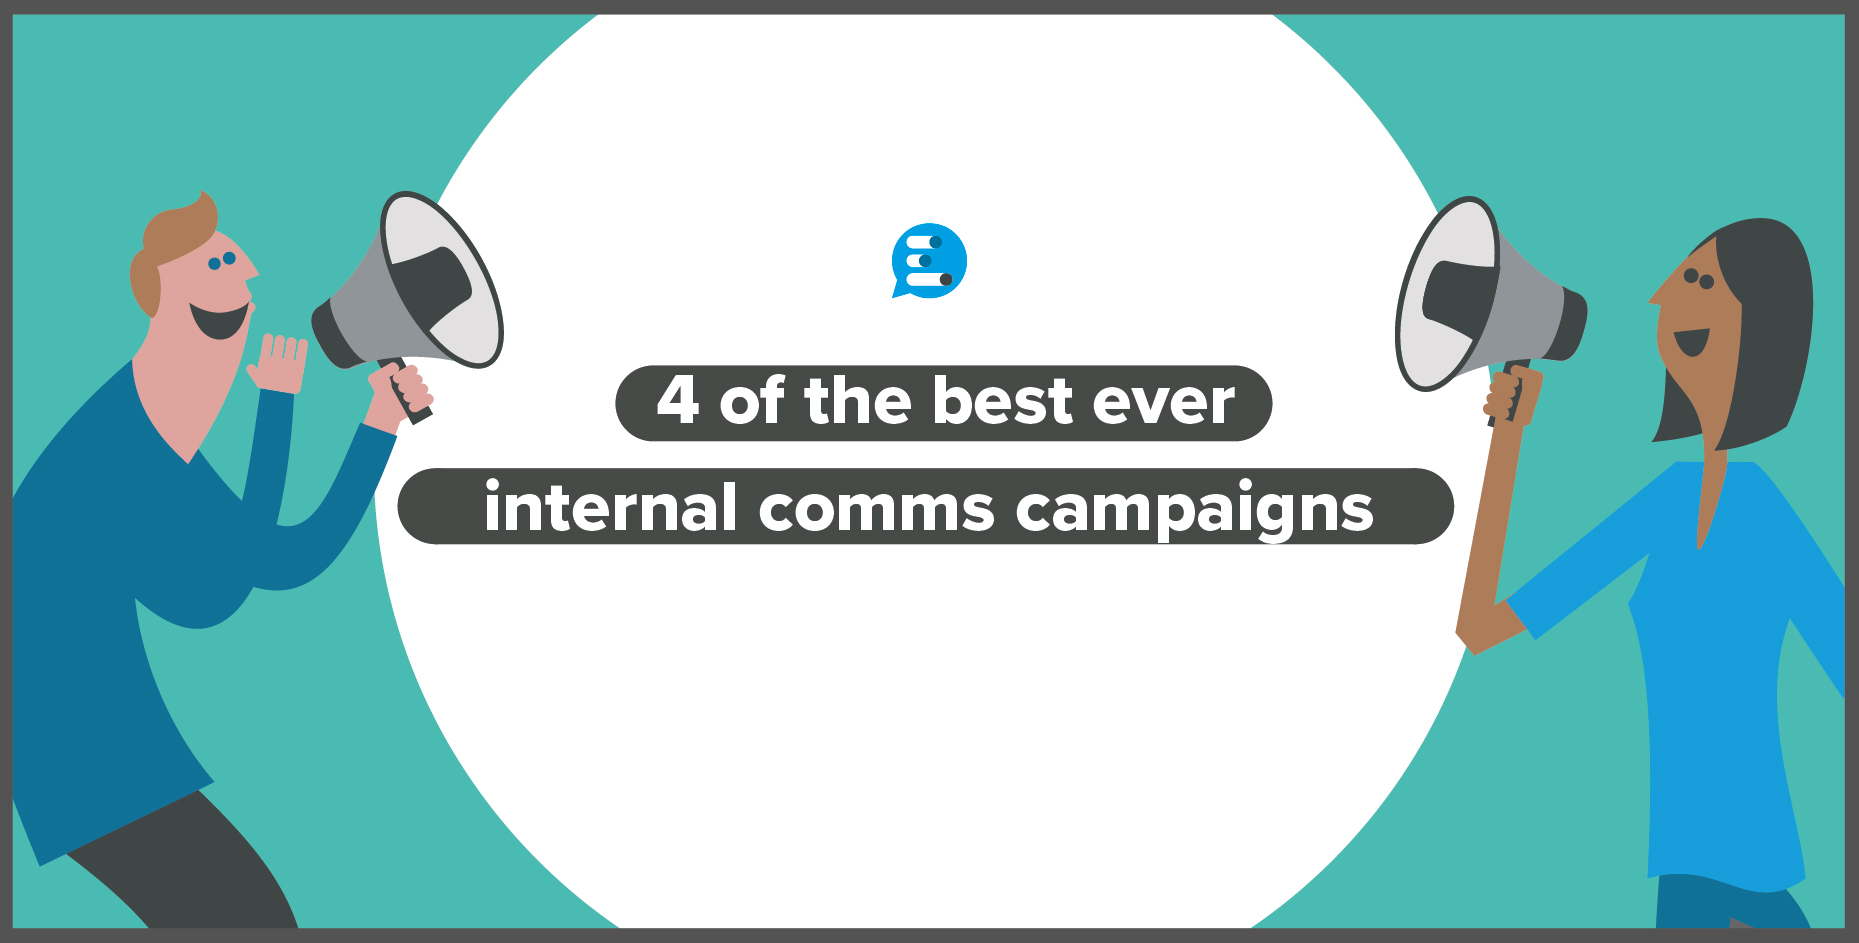 4 of the best ever internal communication campaigns